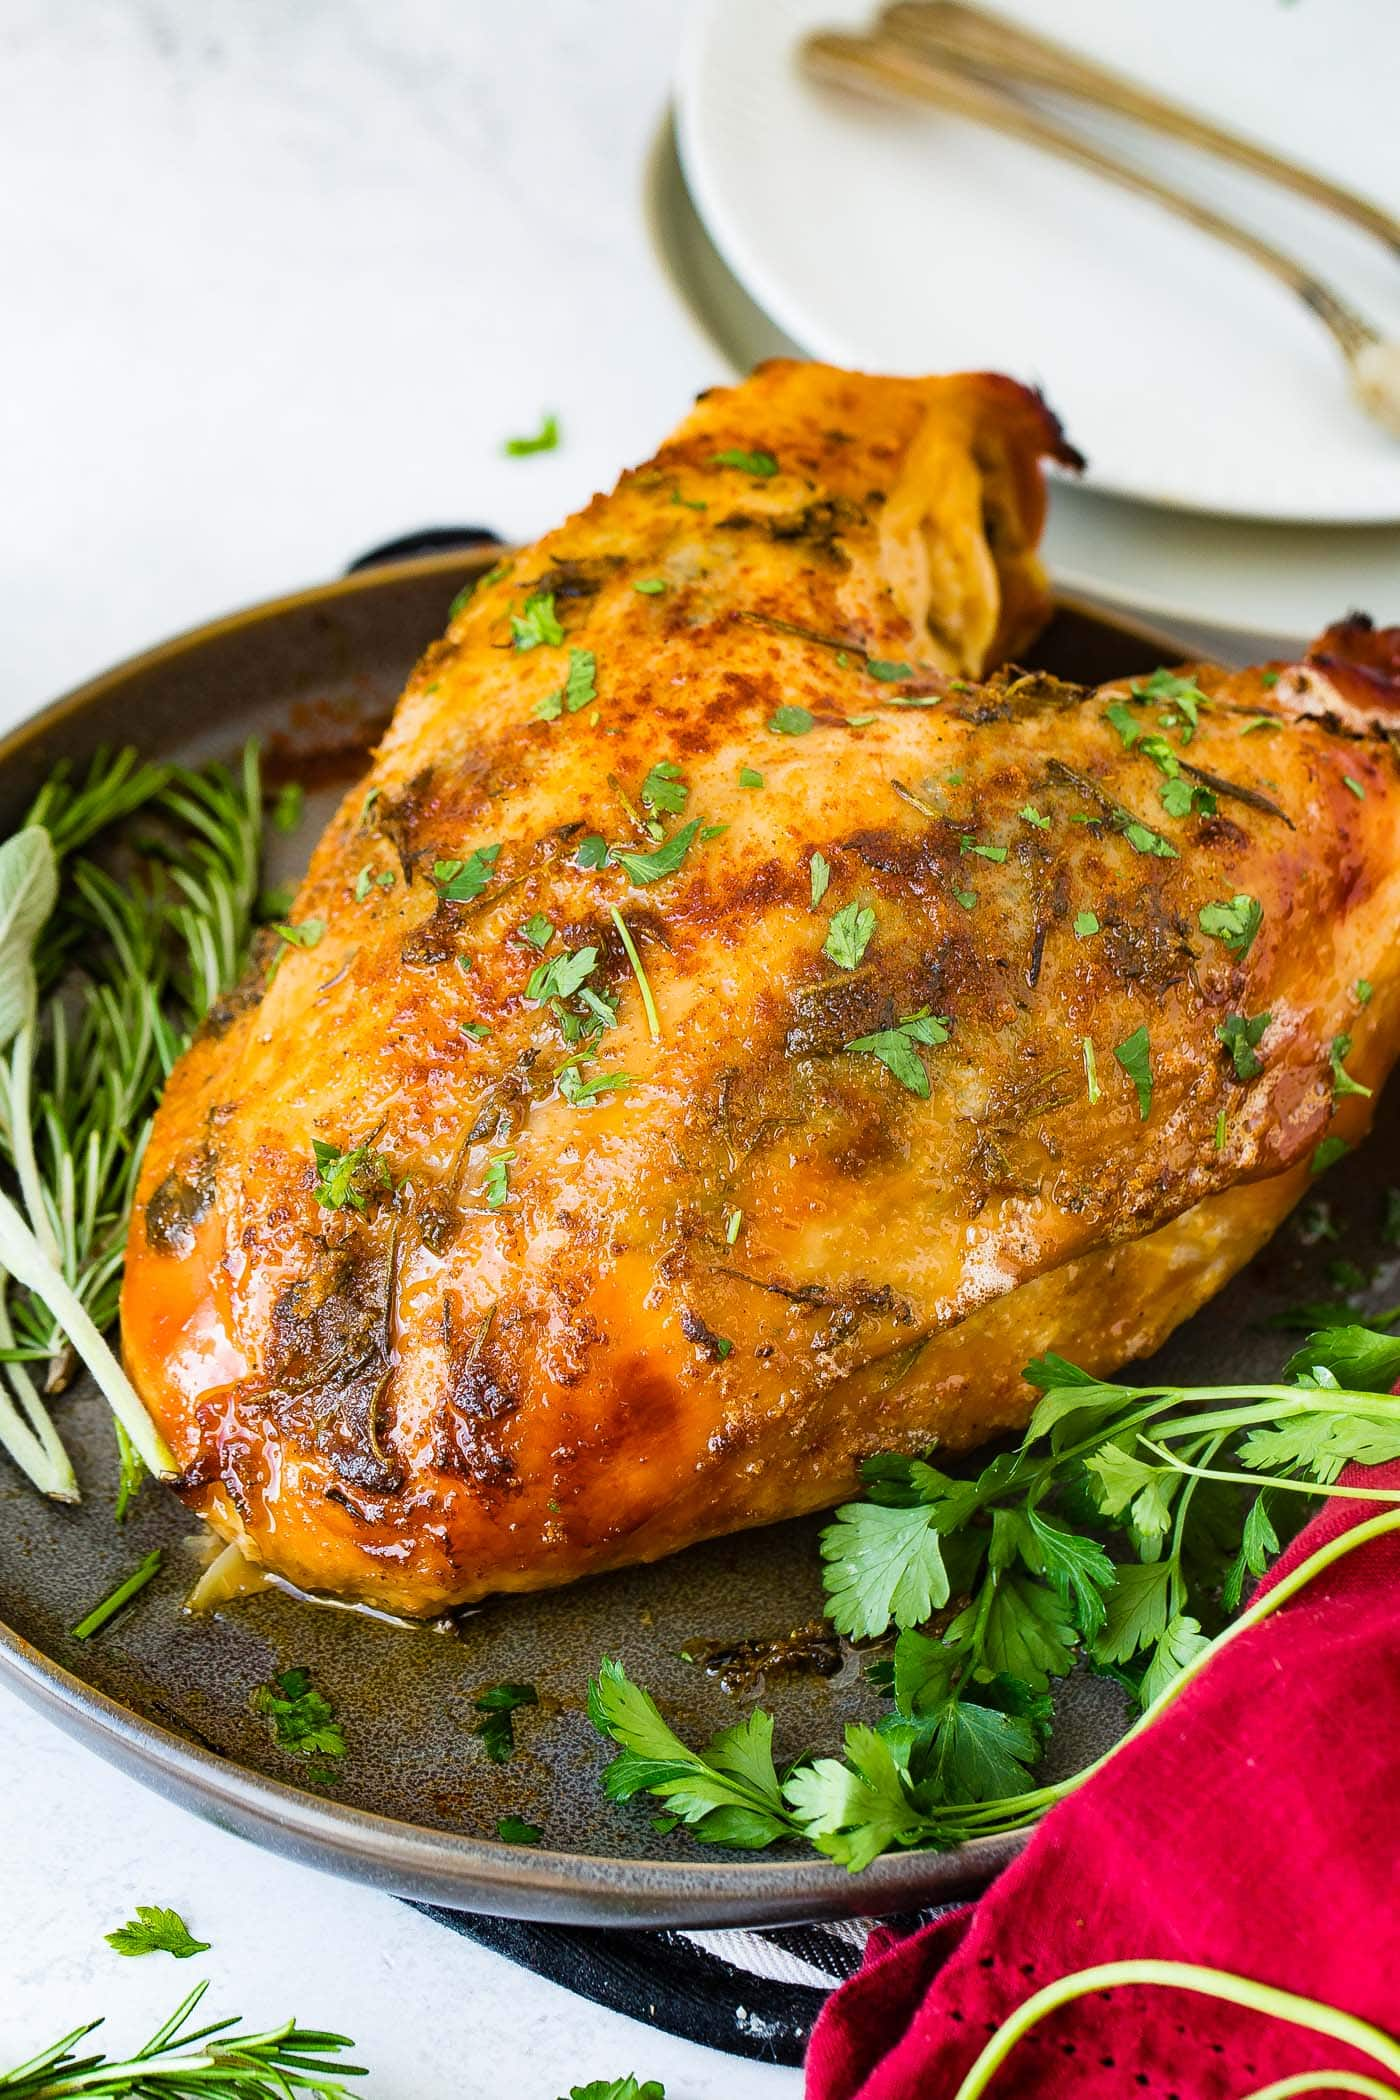 A photo of a double breasted slow cooker turkey breast perfectly golden and crispy.